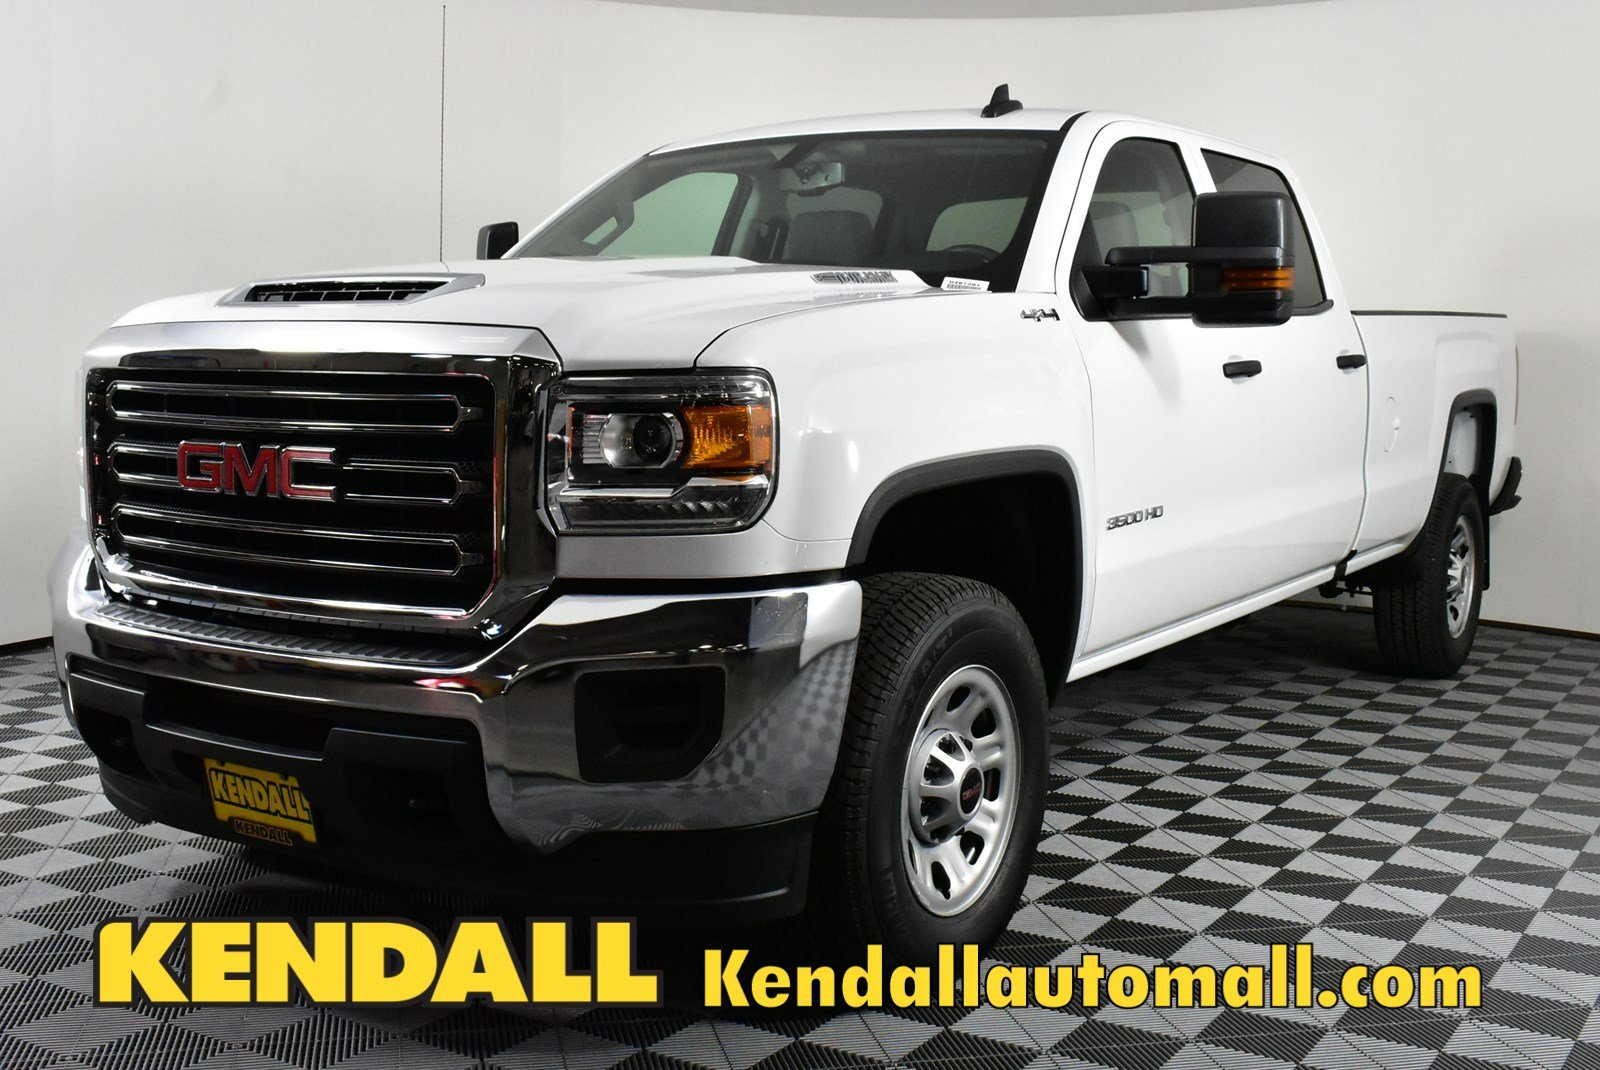 New 2018 Gmc Sierra 3500hd 4wd In Nampa D481261 Kendall At The